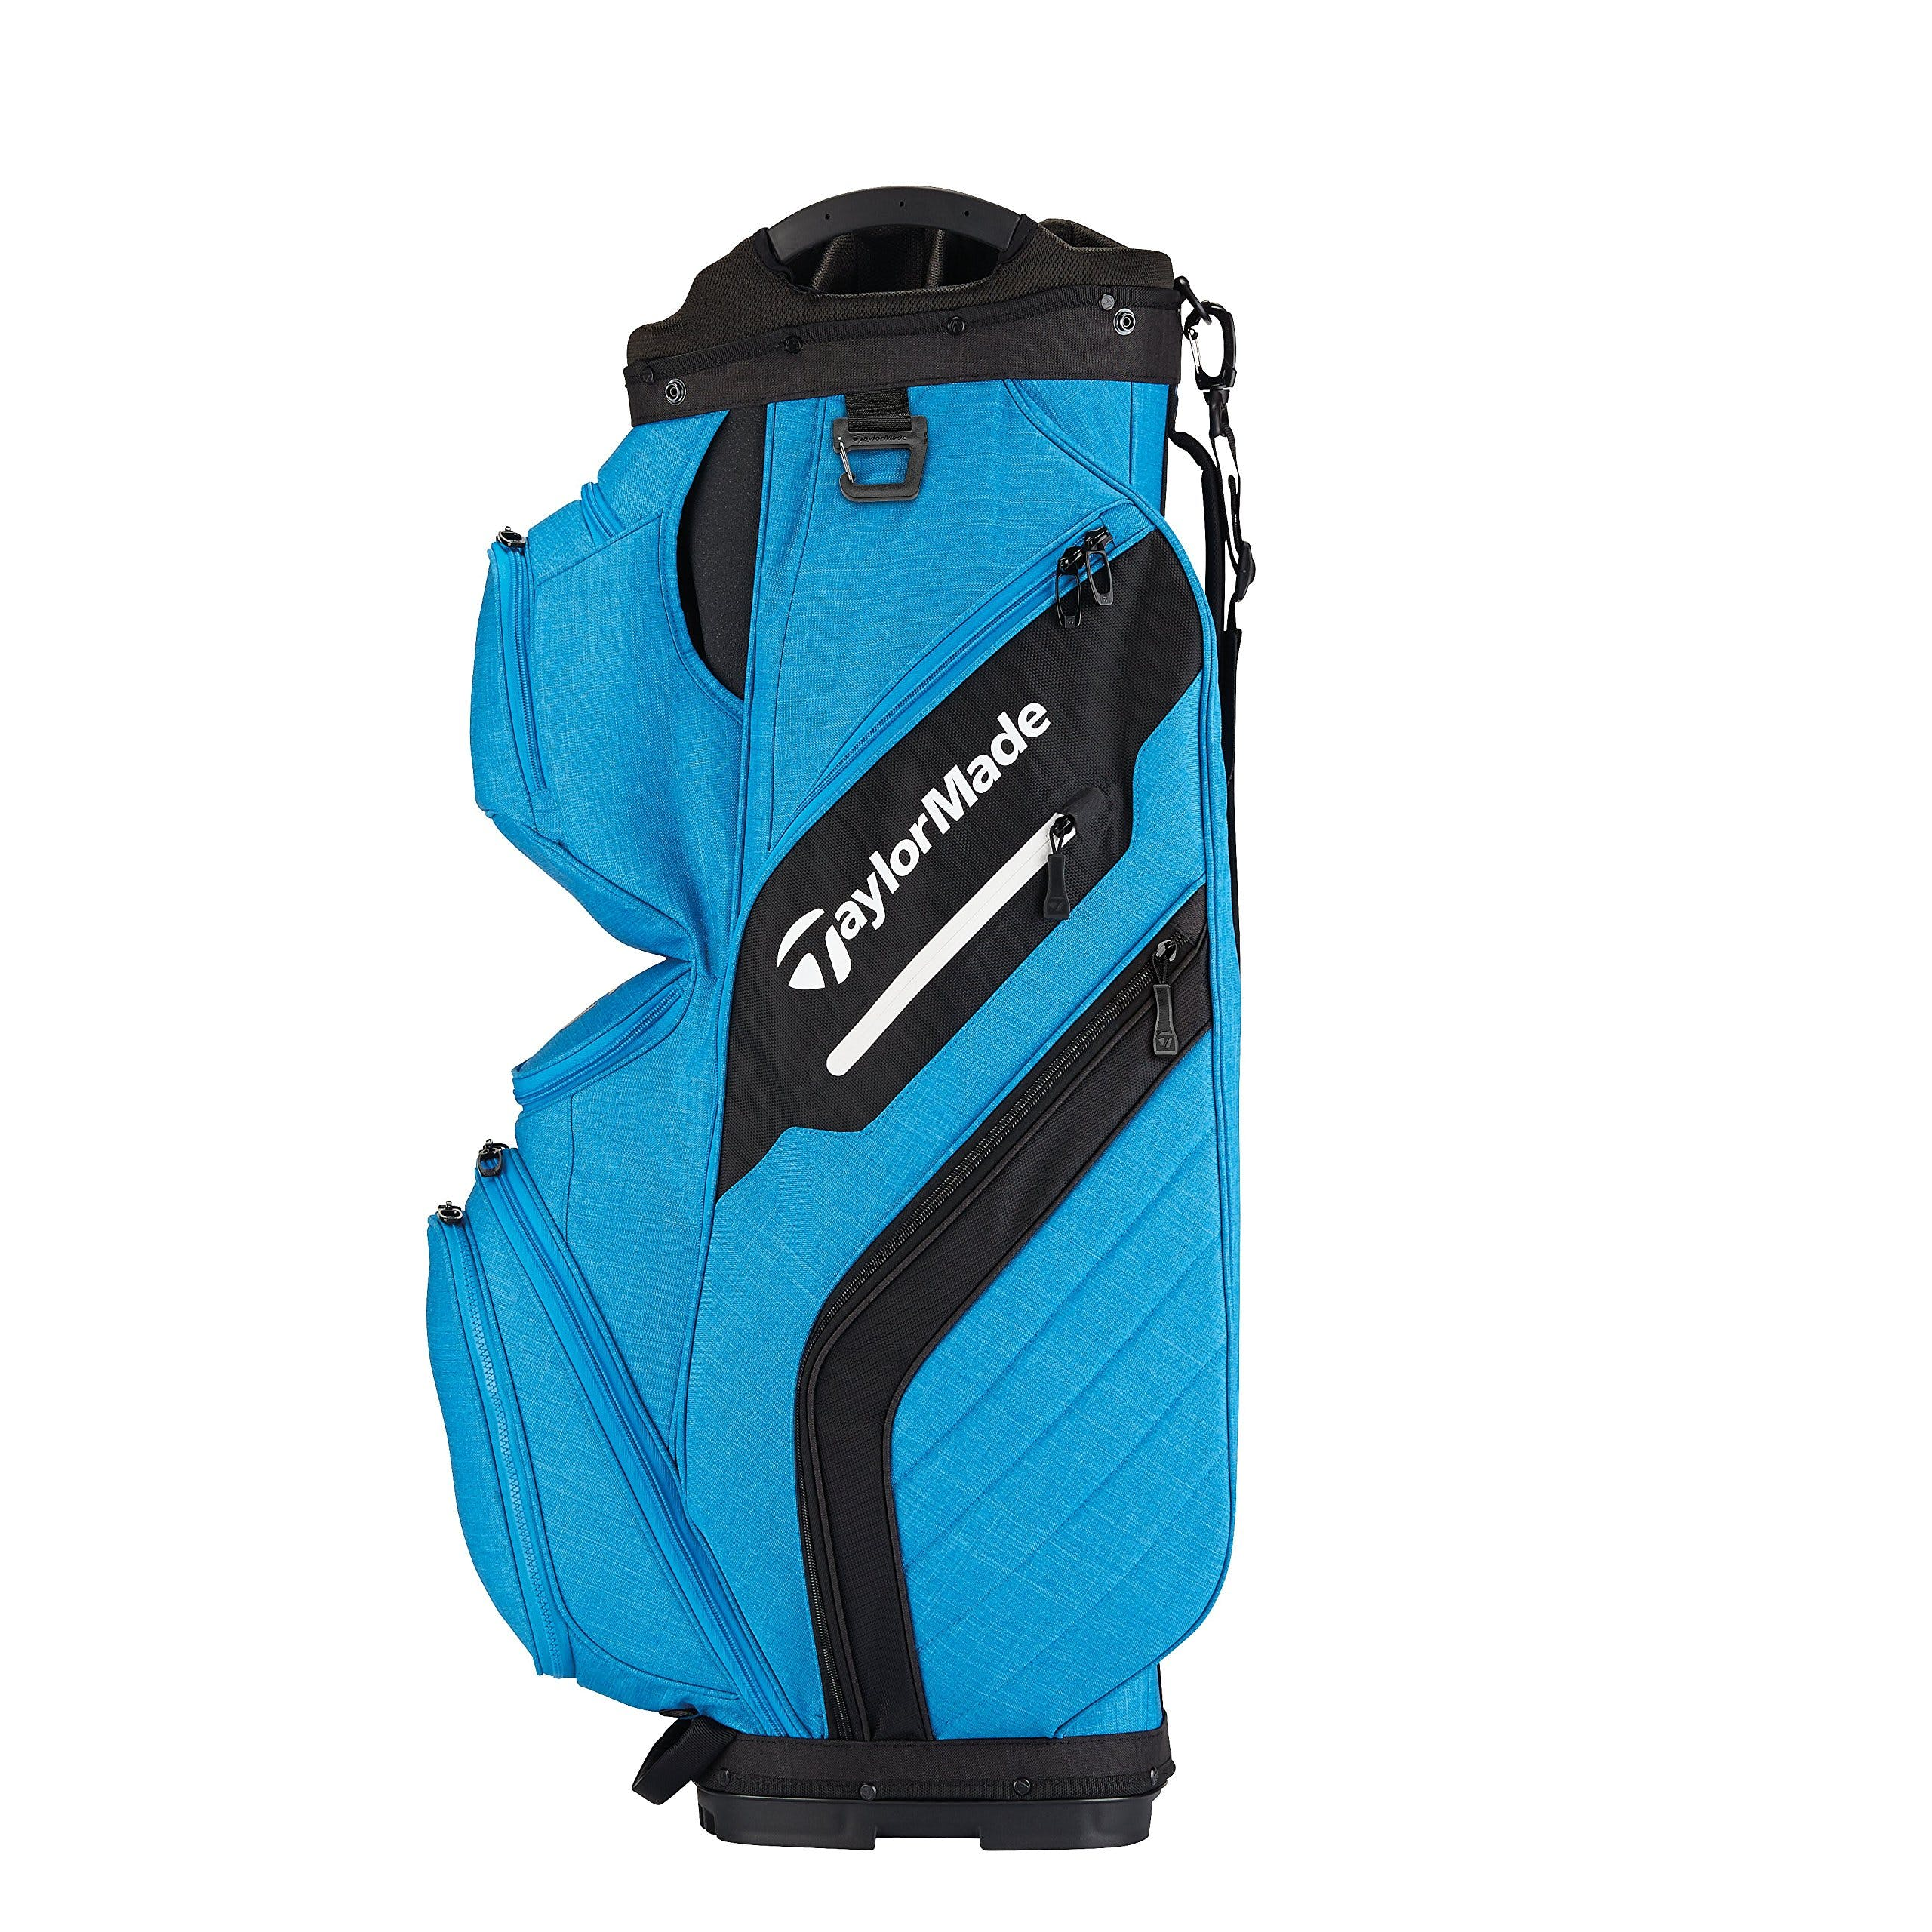 f4dbdfda94 TaylorMade Supreme 2018 Golf Cart Bag on Curated.com